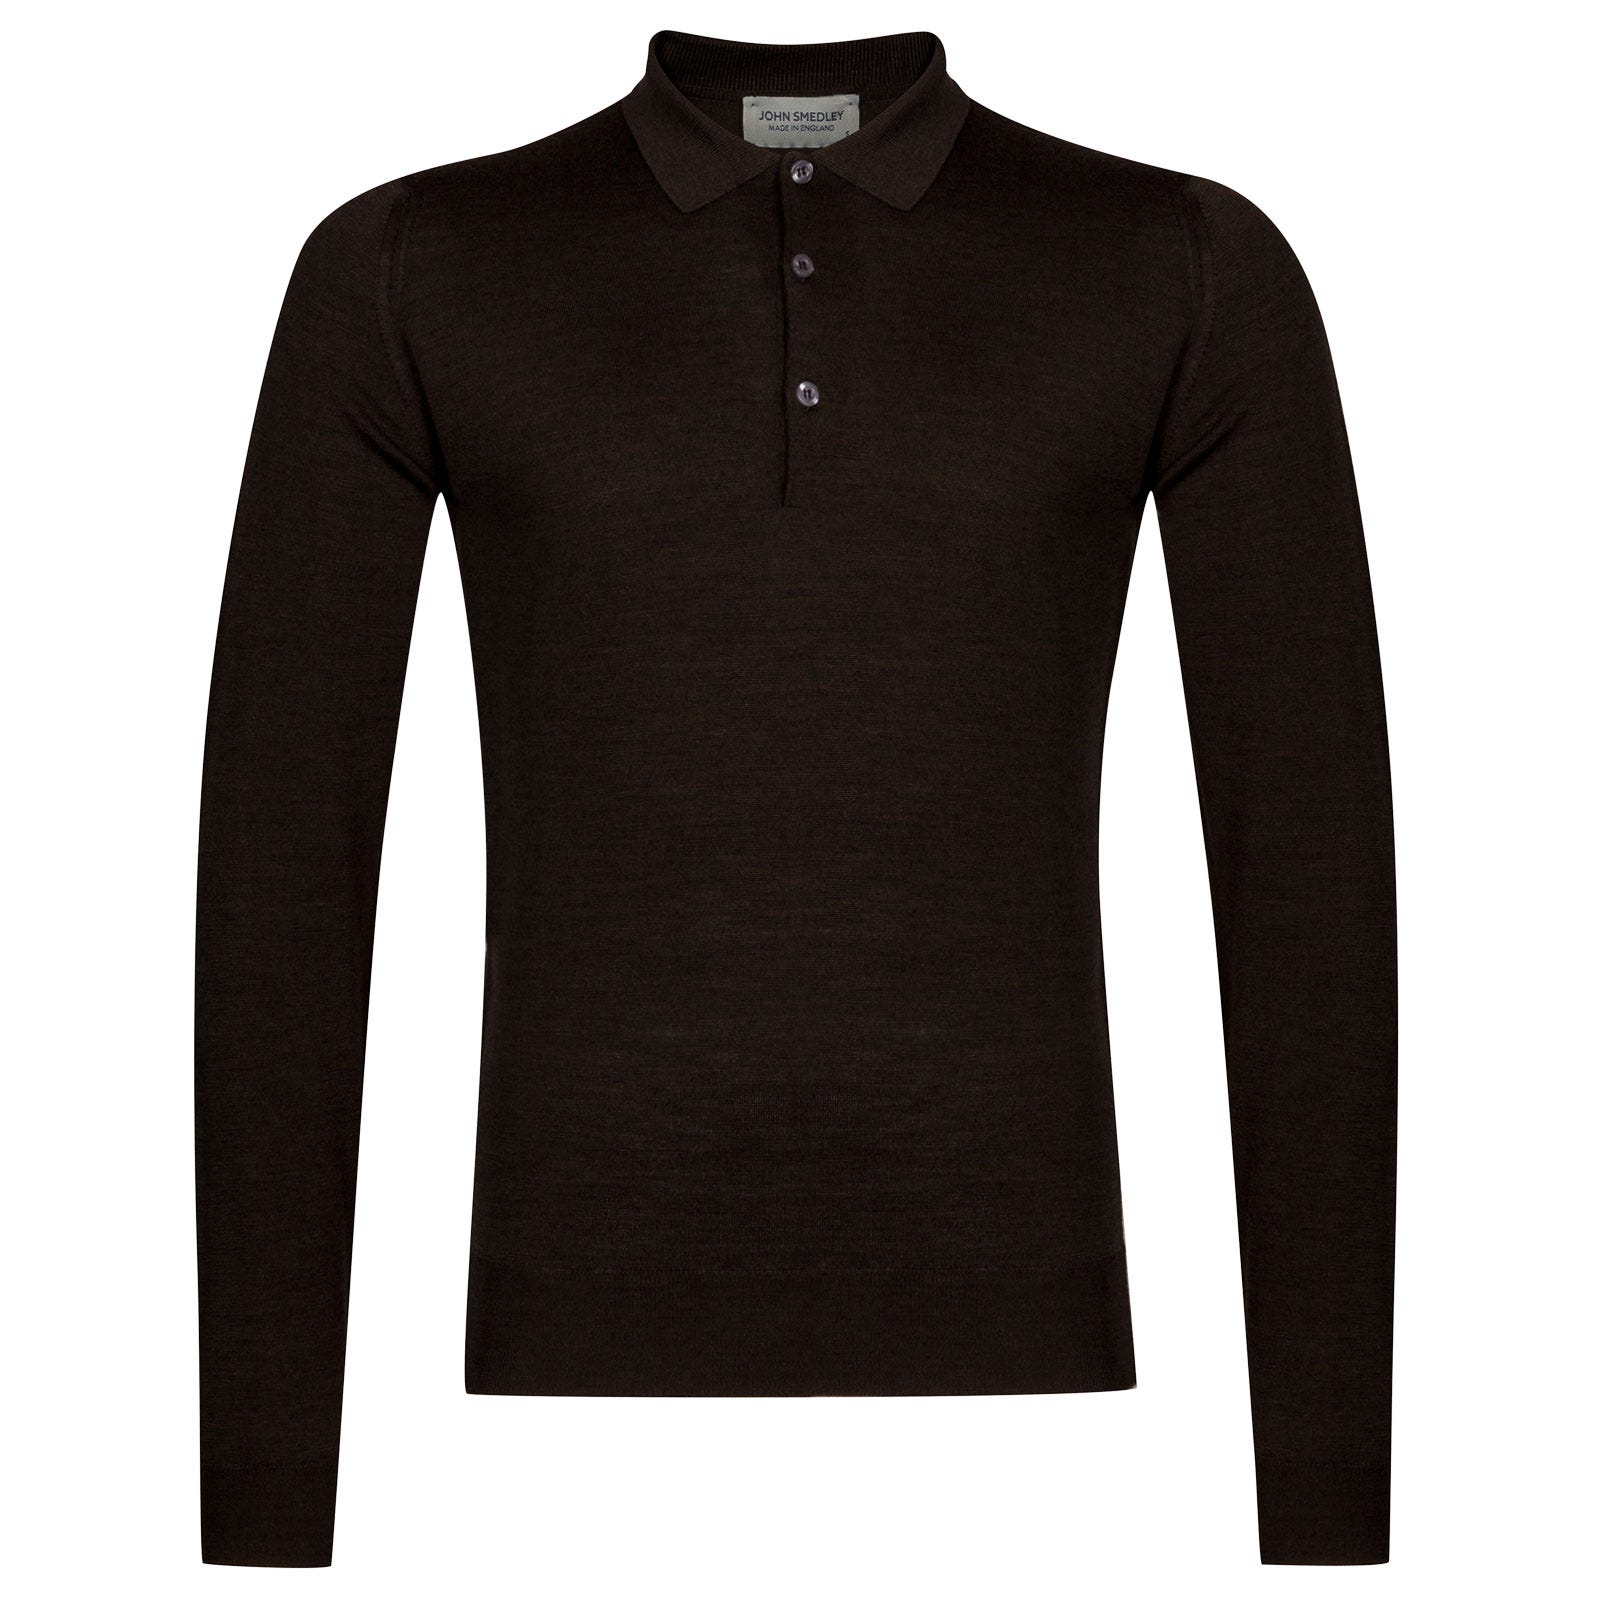 John Smedley belper Merino Wool Shirt in Chestnut-L